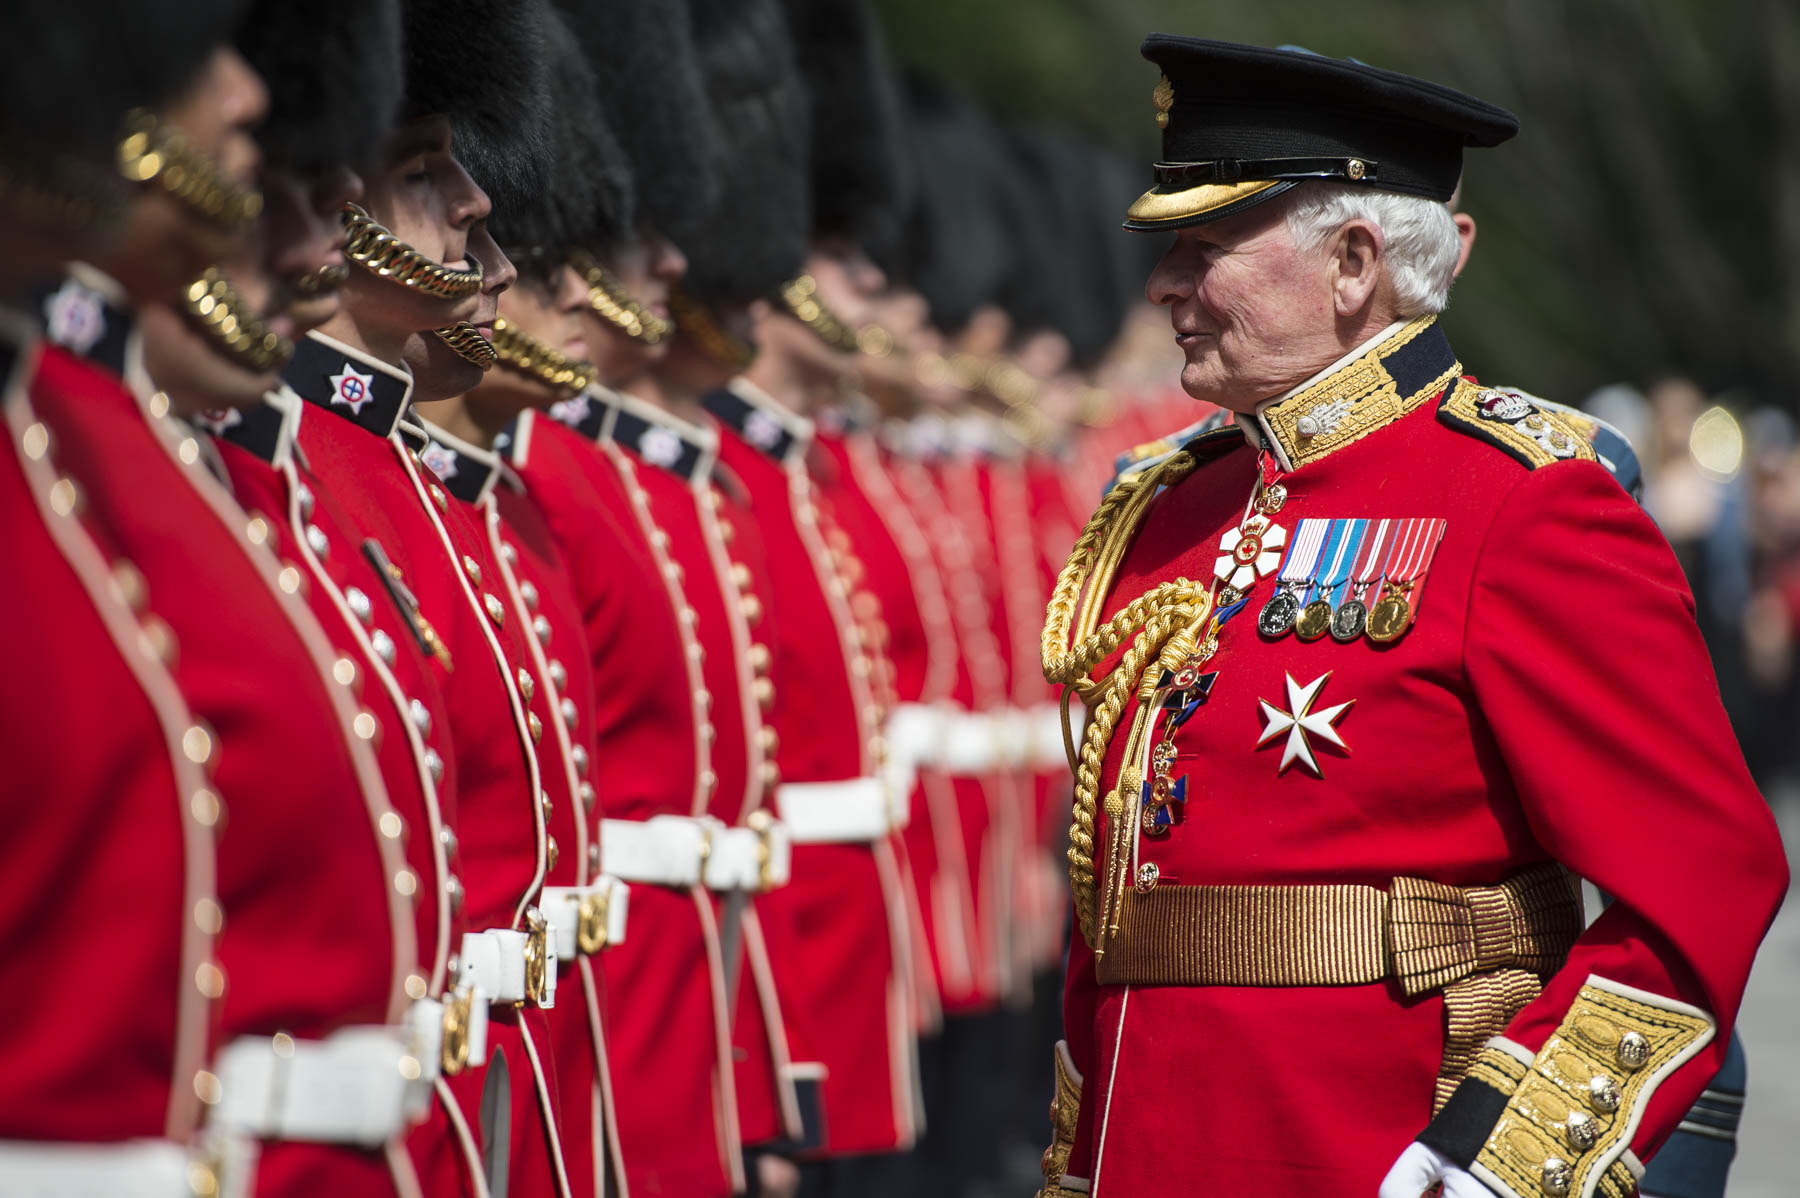 The Governor General and Commander-in-Chief inspected the Ceremonial Guard.